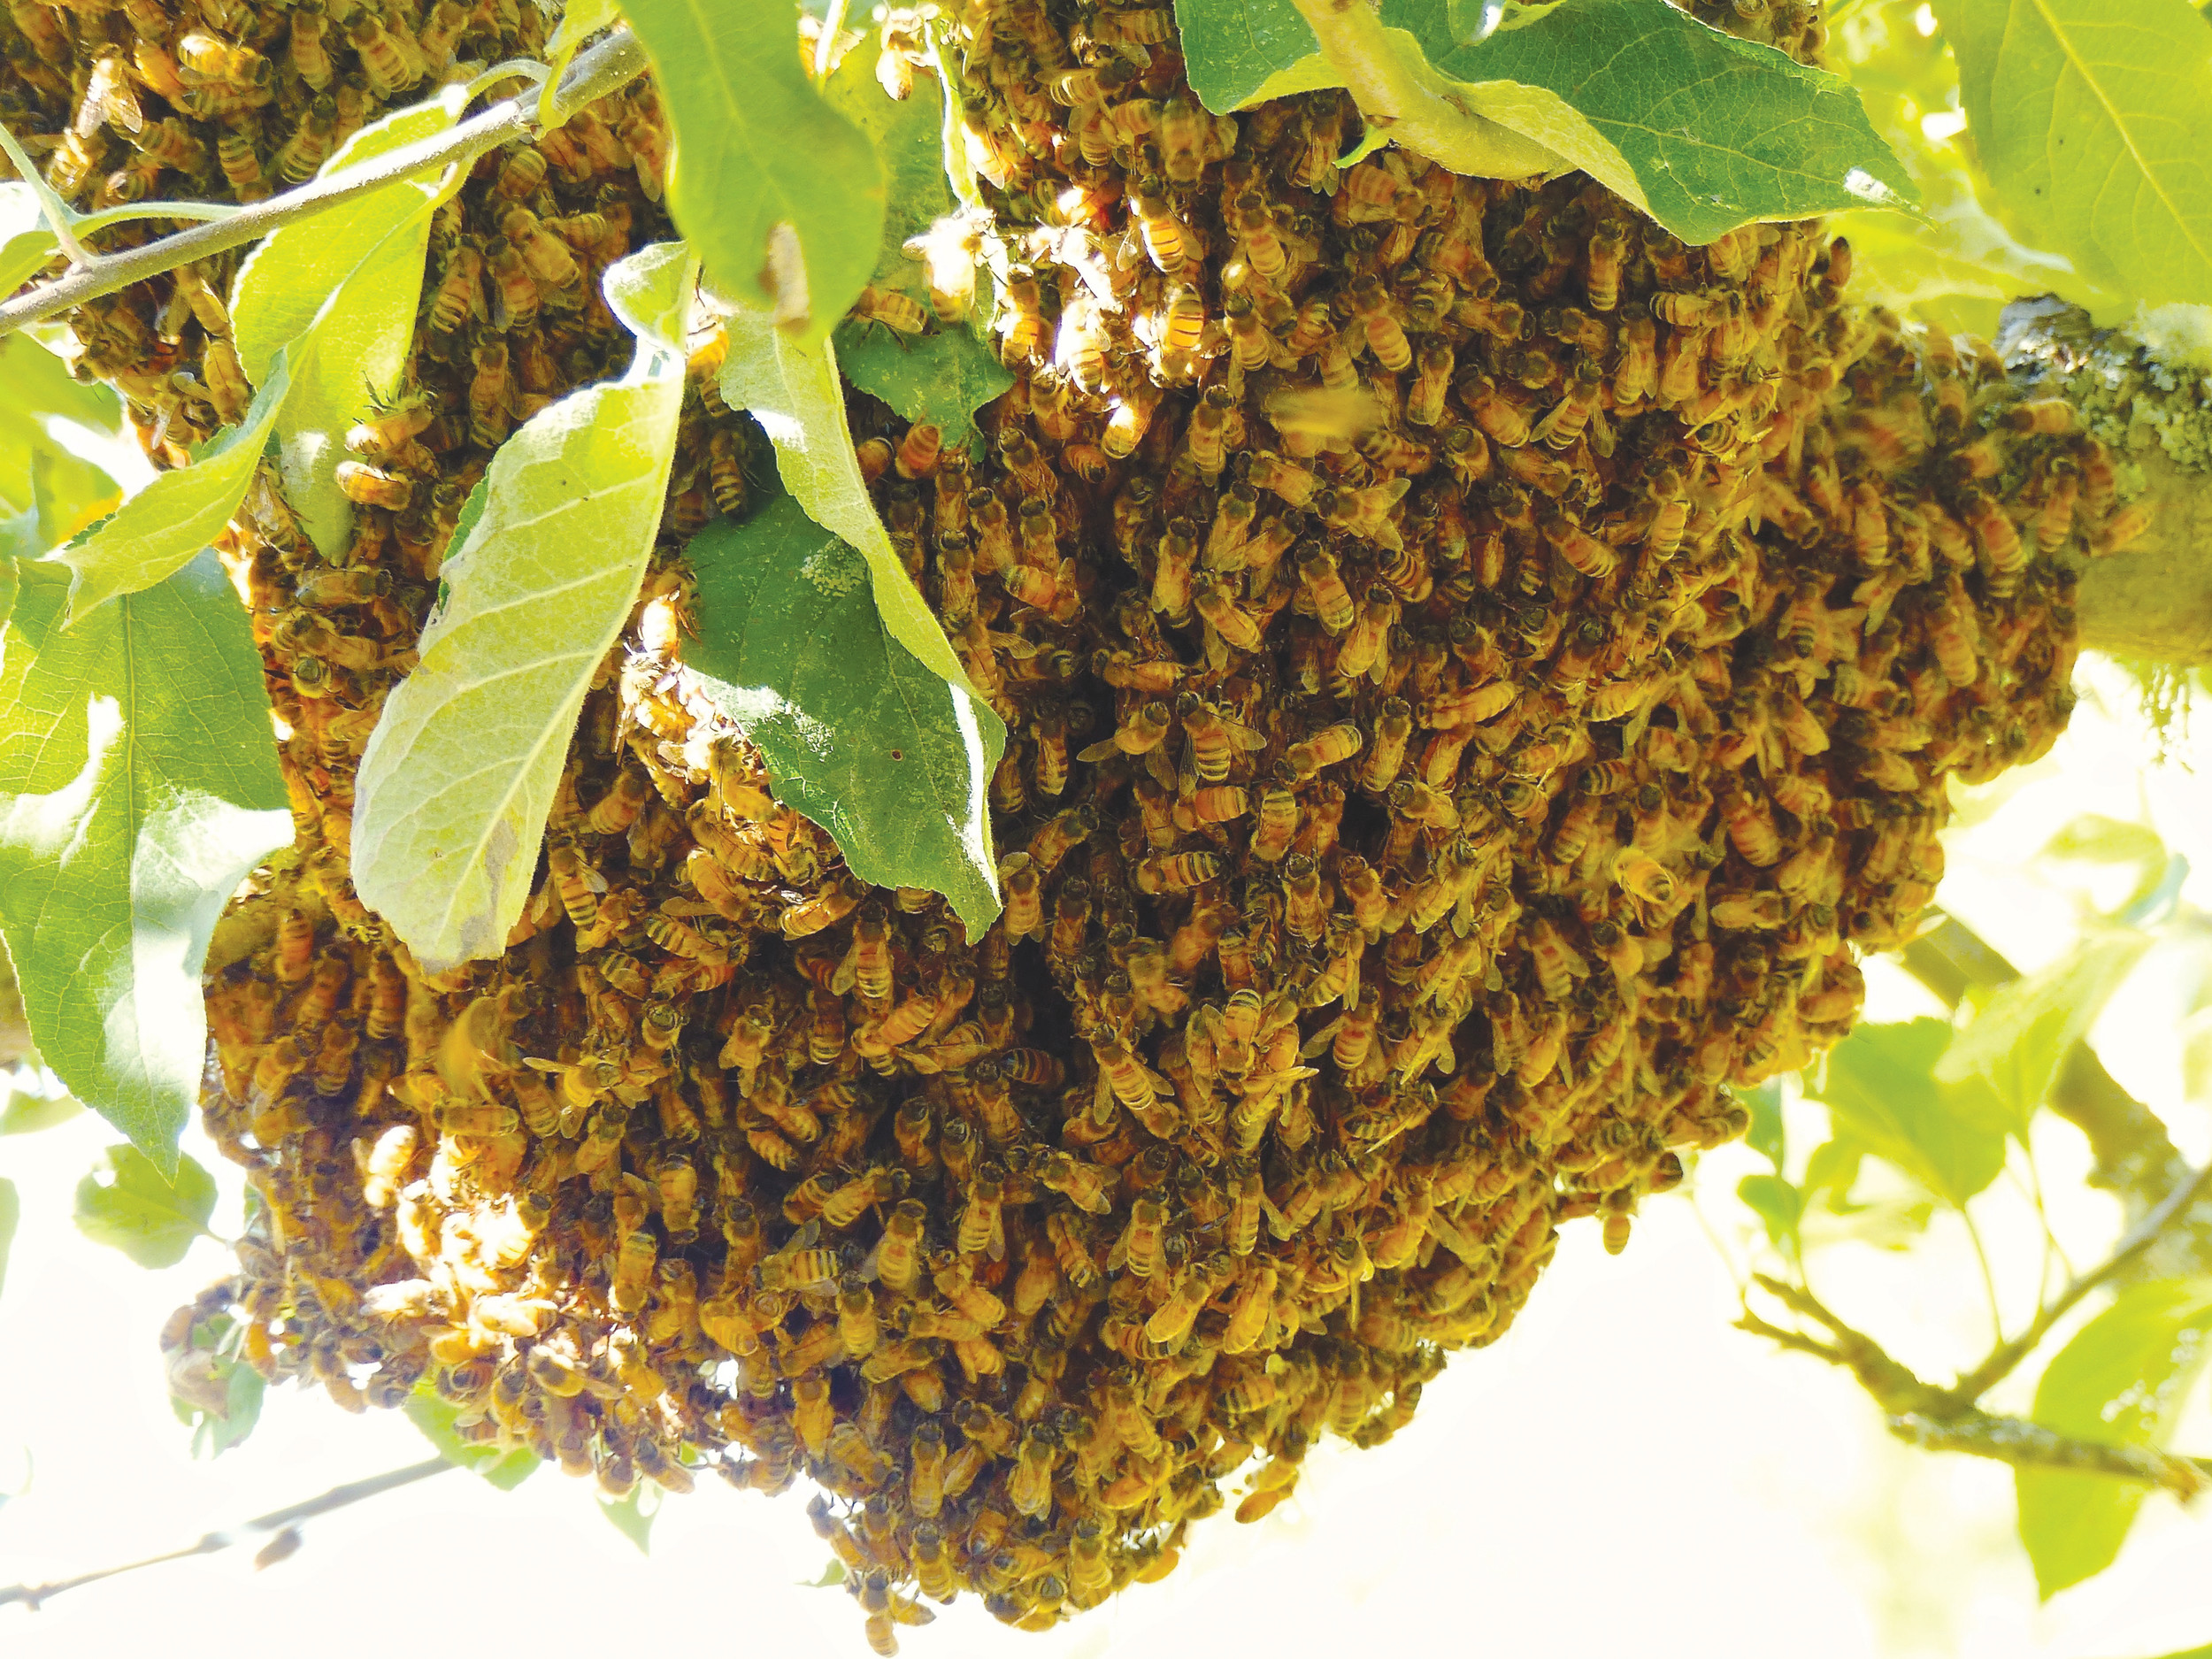 A honeybee swarm cluster is seen gathered on an apple tree near Langley, Washington, in September. Honeybees generally swarm a short distance and then hang out for a short time on tree limbs, stop signs, the sides of houses or perhaps in playgrounds. They can be recovered and installed in new hives if done quickly as was the case with this swarm cluster.